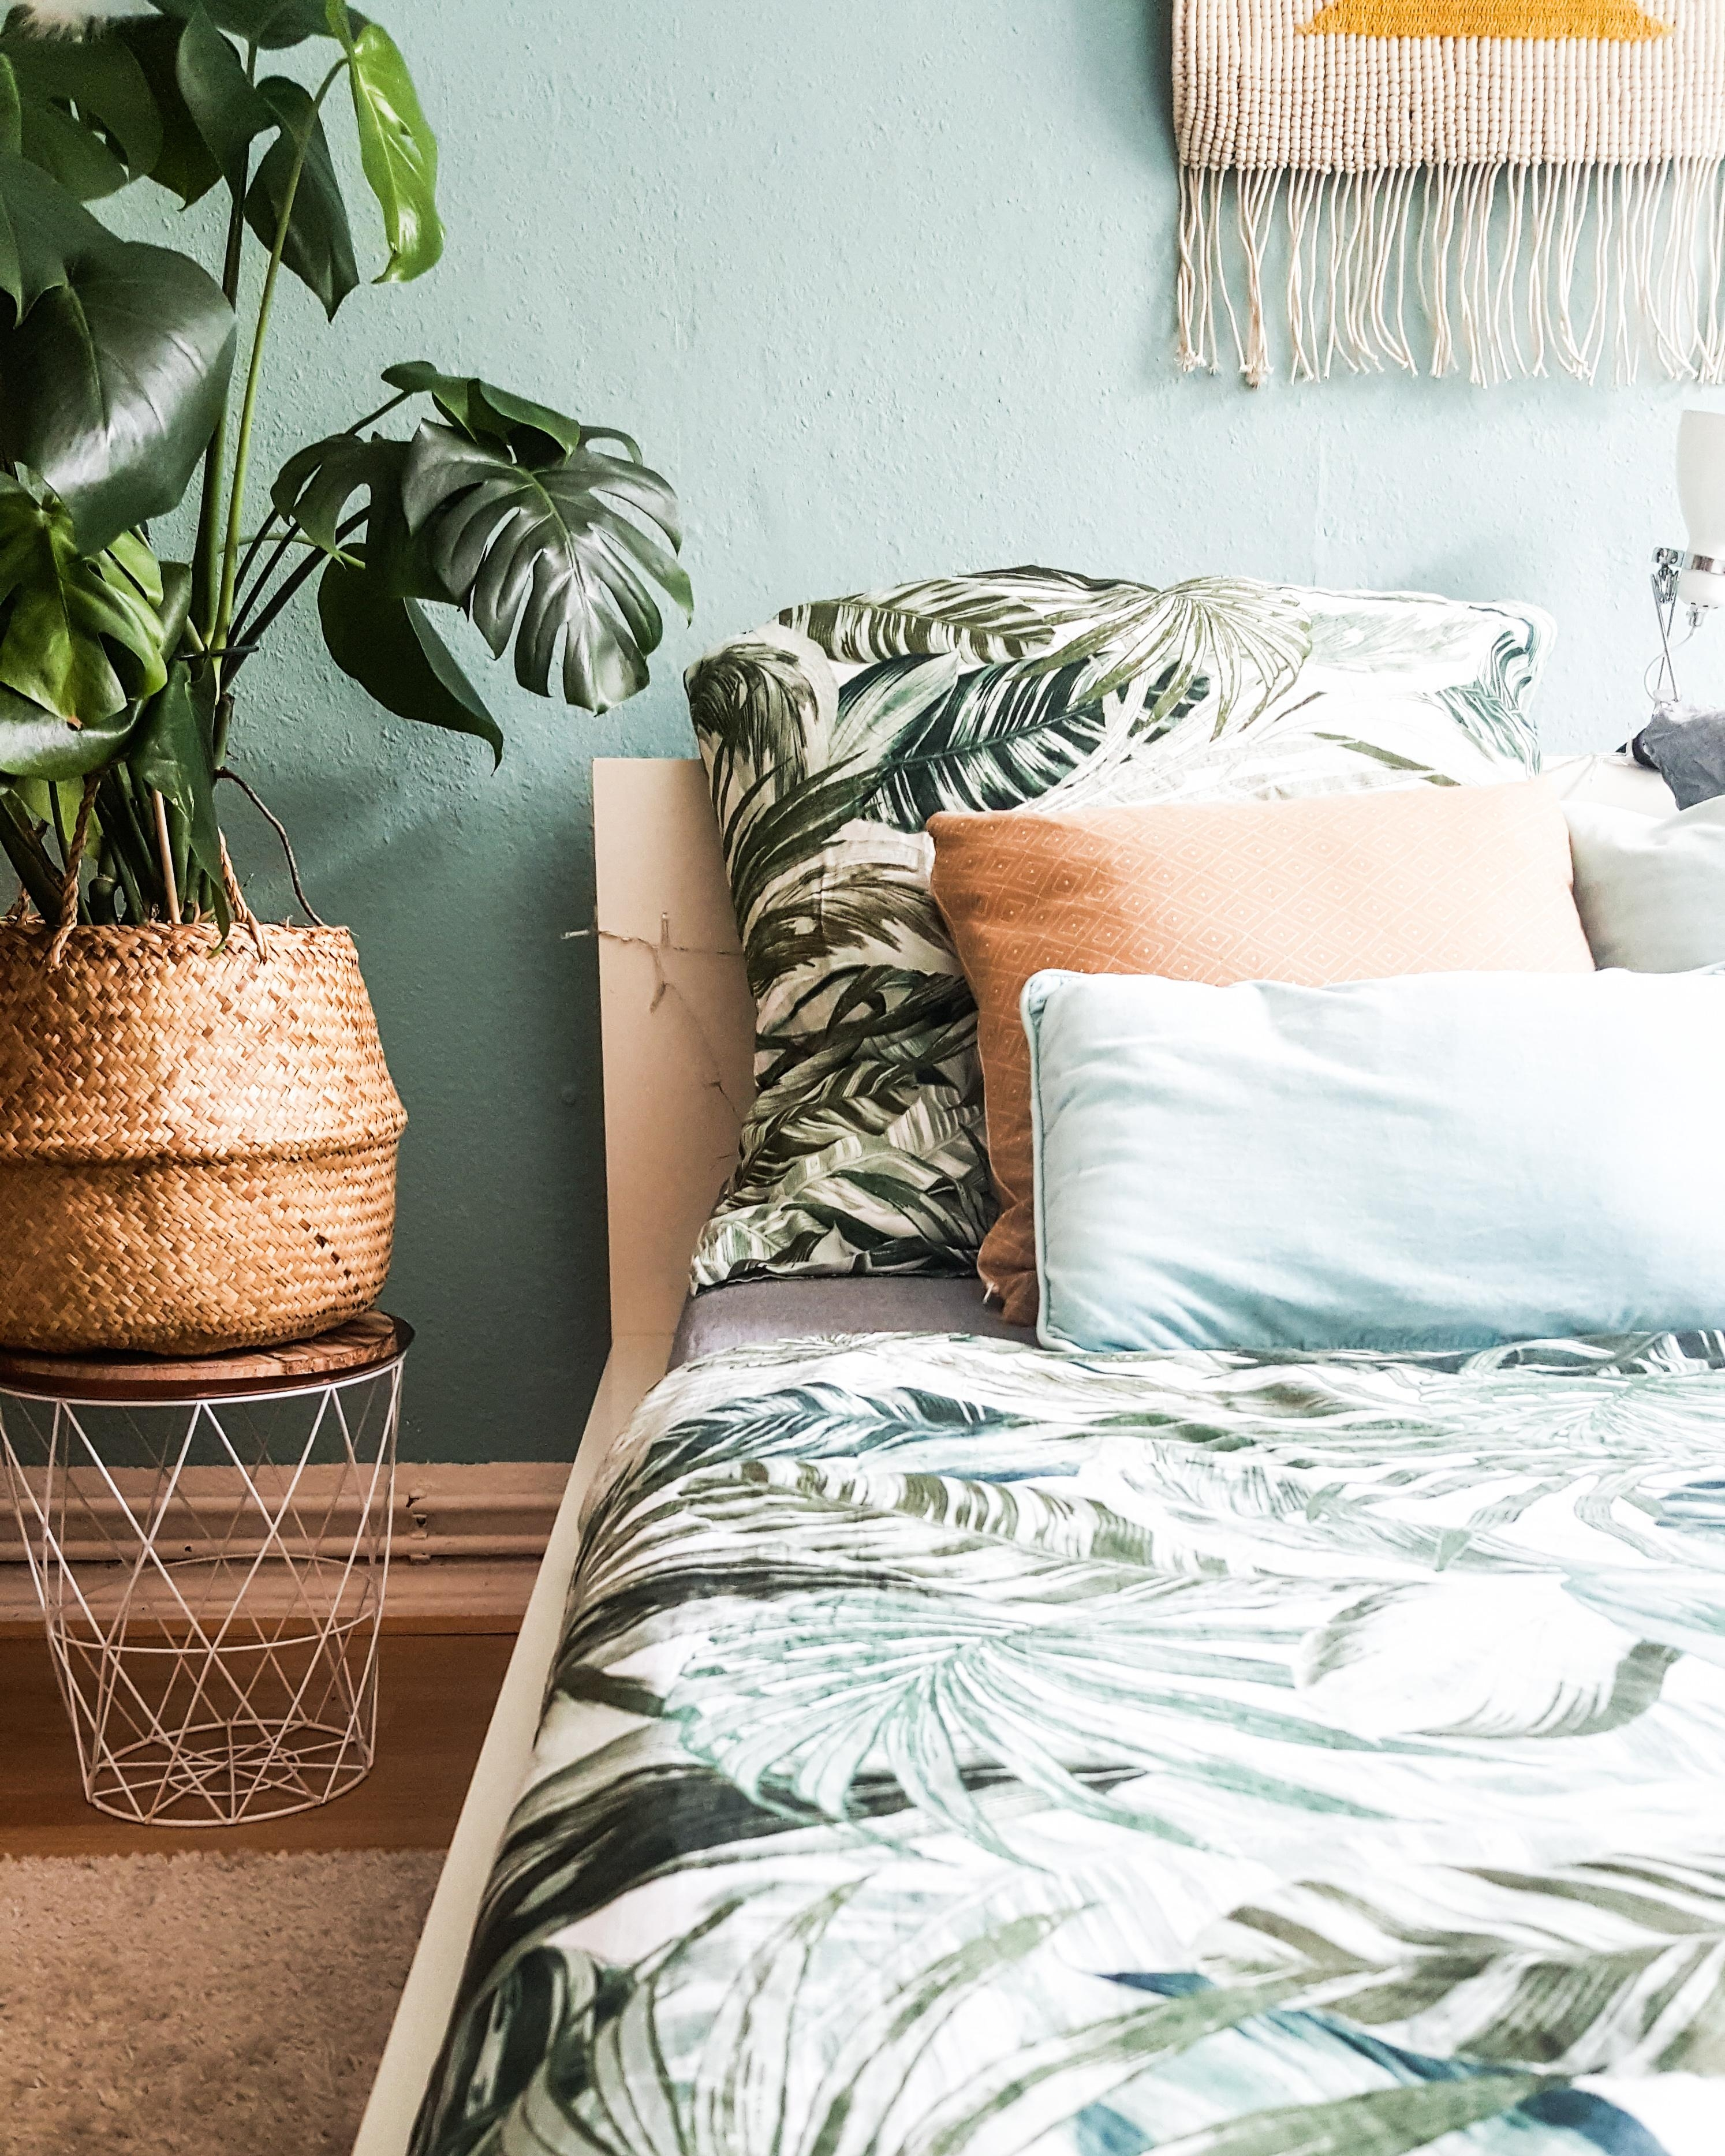 #boho #plants#bedroom#vintage